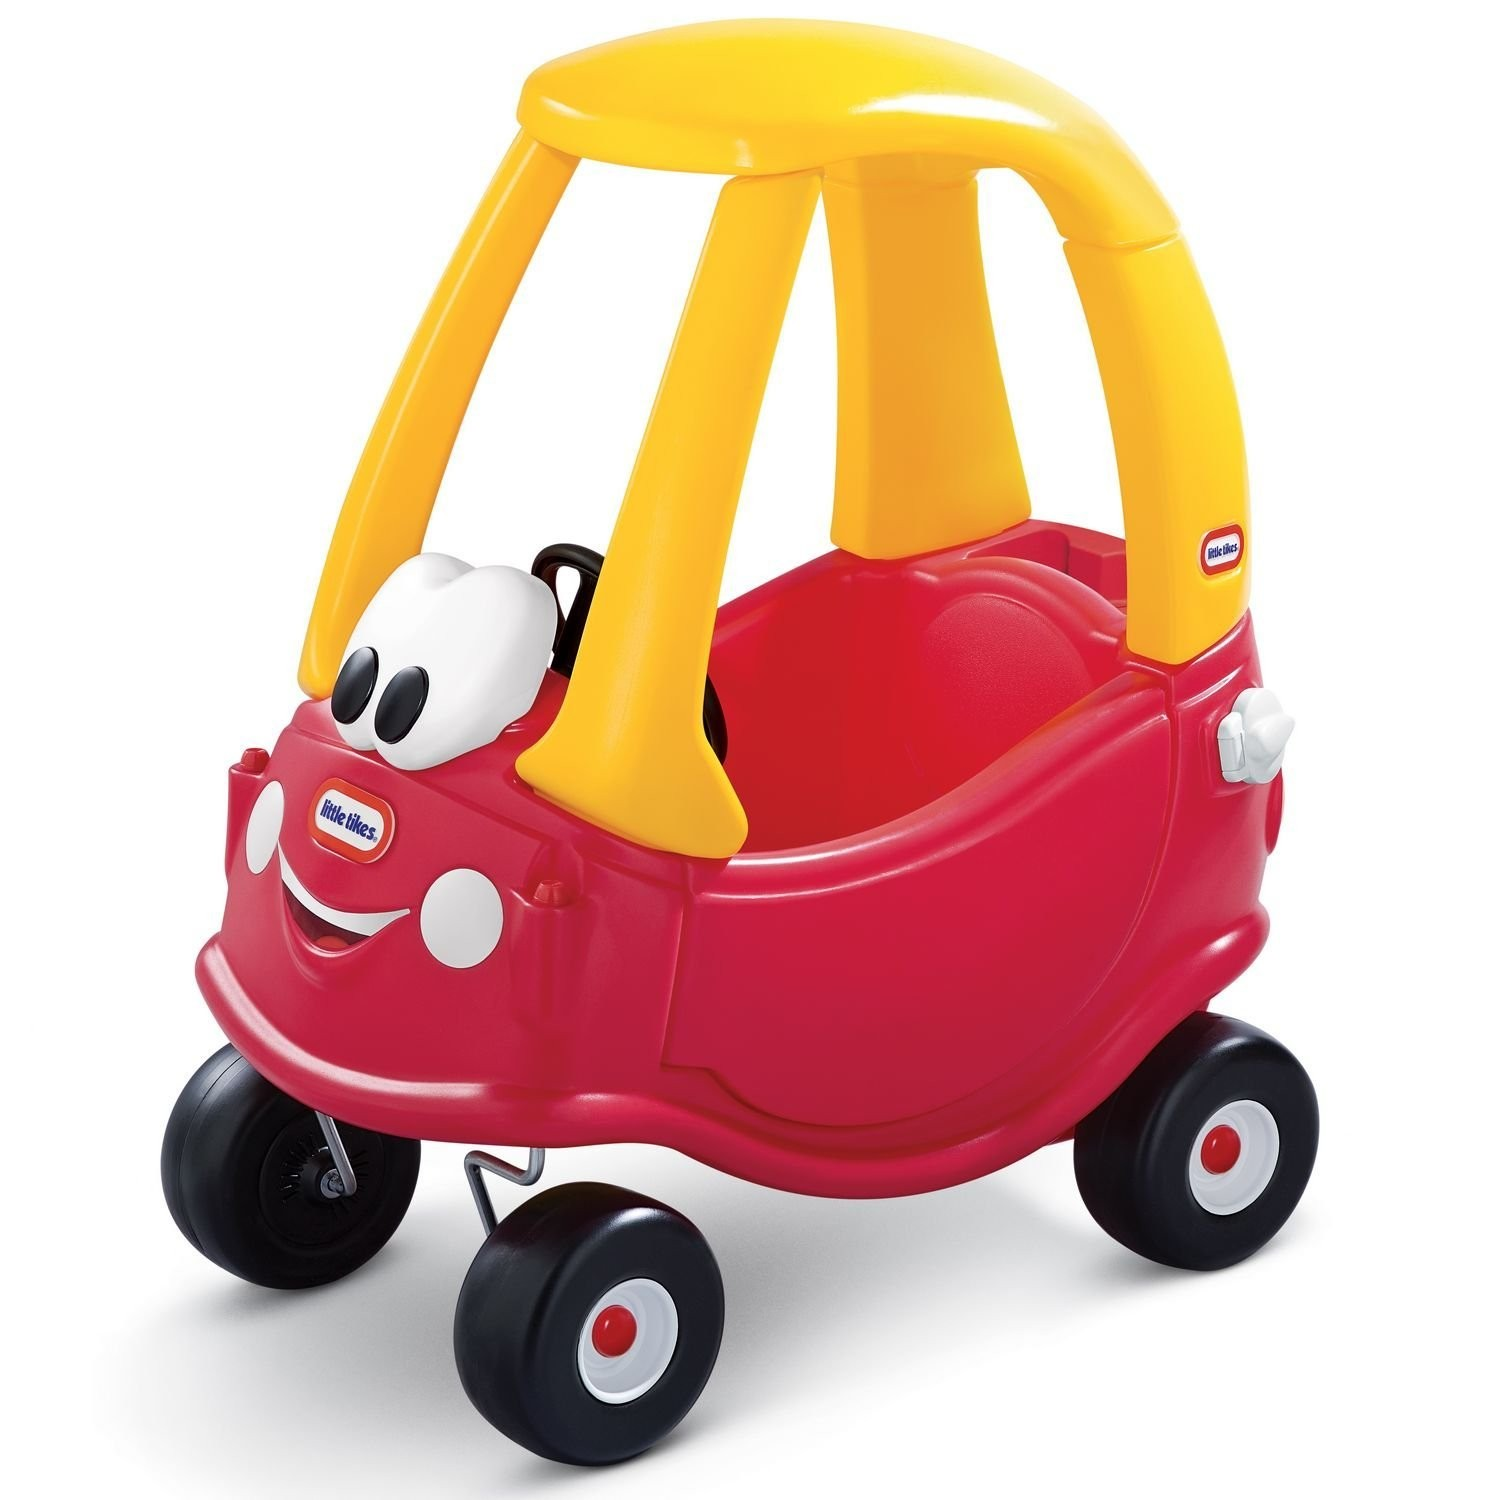 Toddler Car Dashboard Little Tikes Cozy Coupe 612060